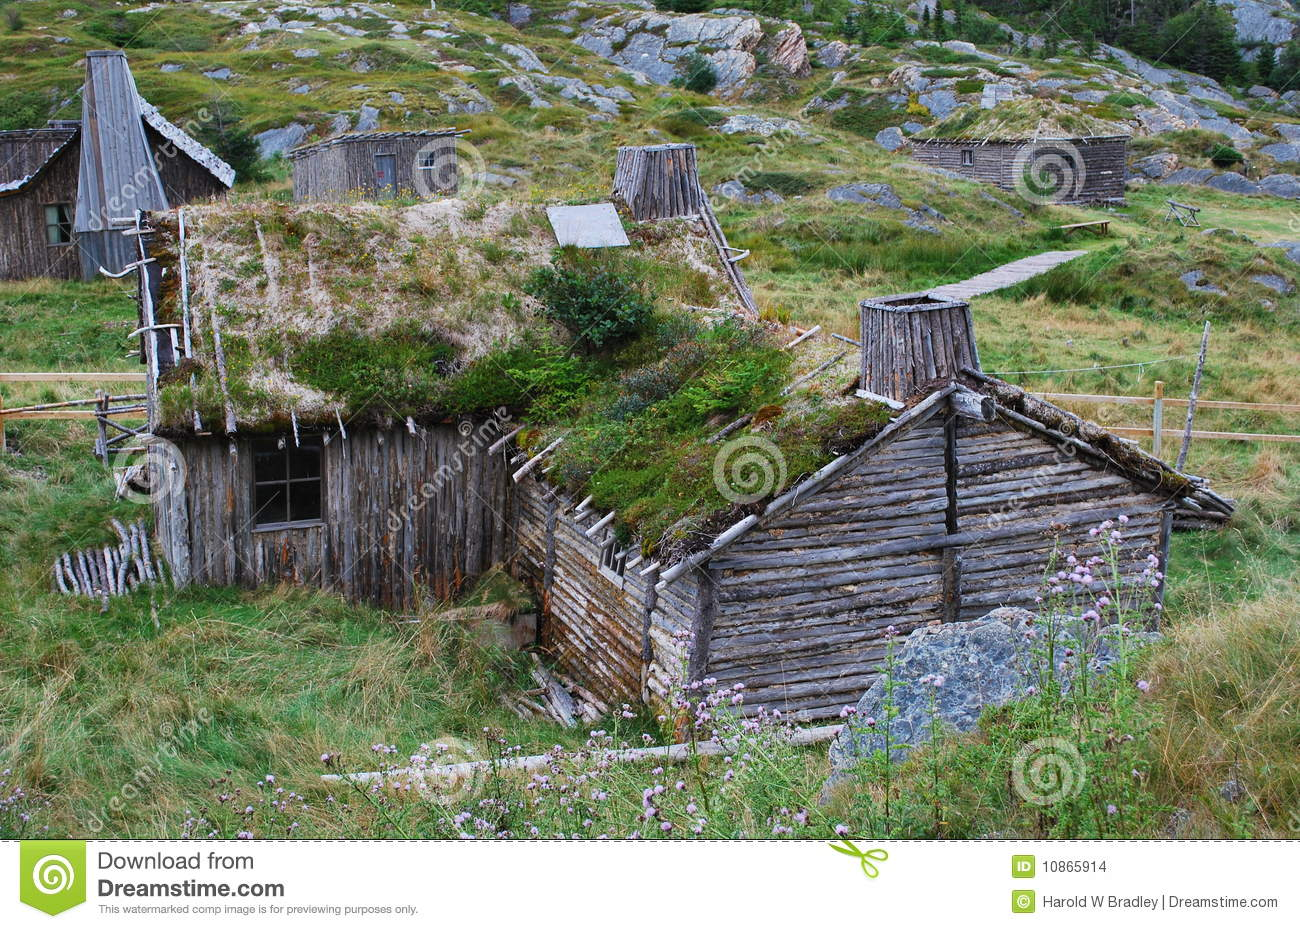 House Plans and Design  House Plans Canada Newfoundlandyear old house   grass growing on the roof in Newfoundland  Canada